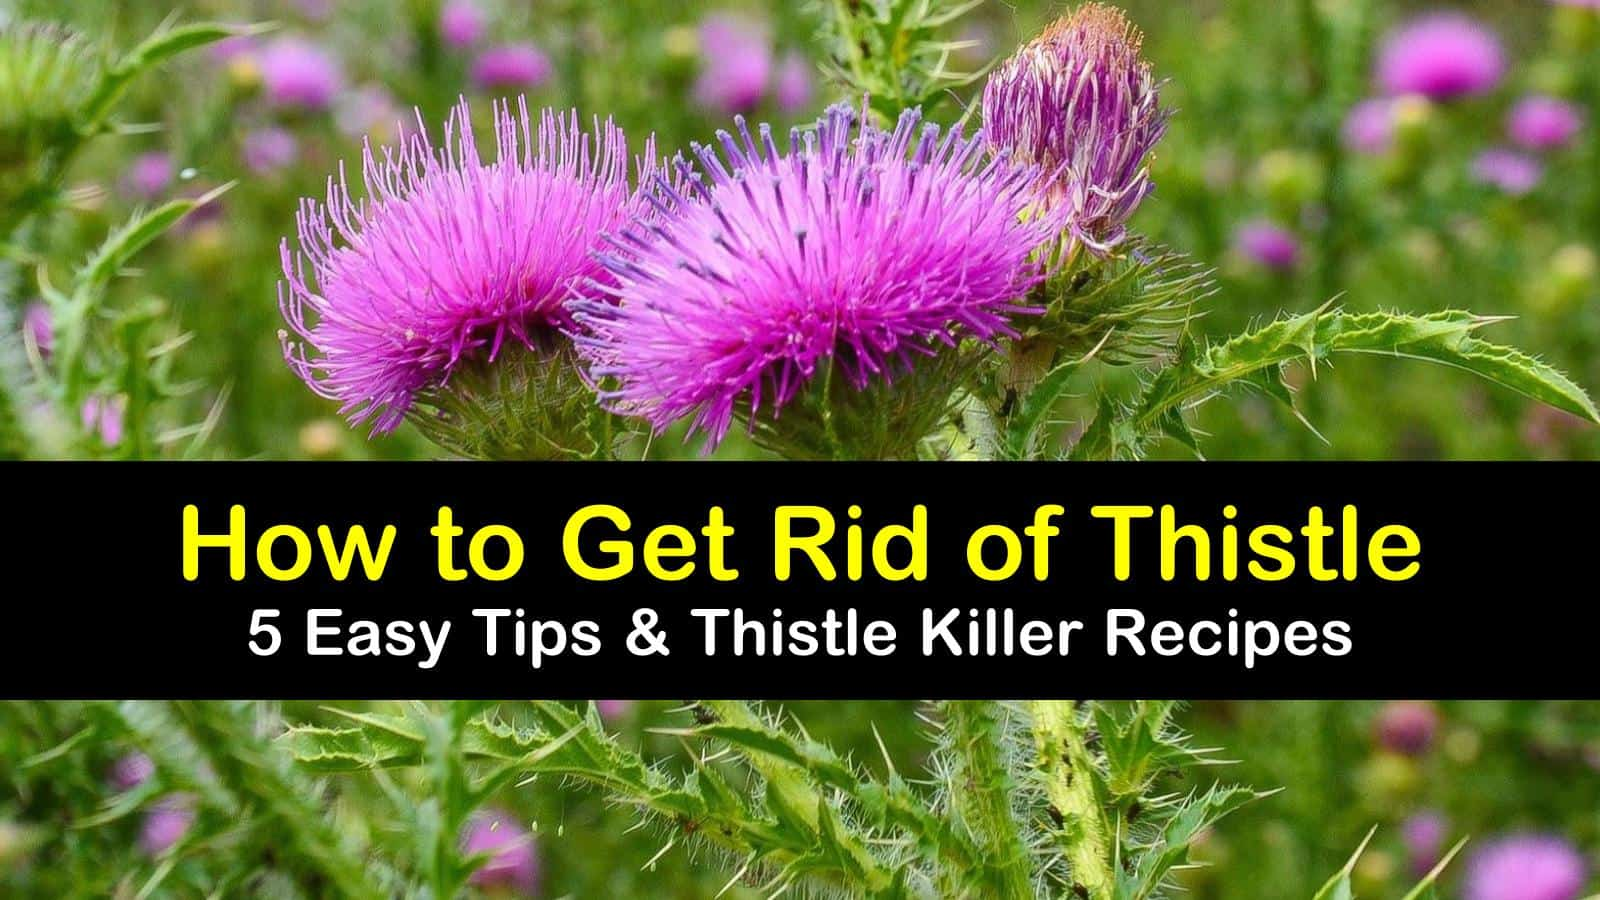 how to get rid of thistle titleimg1